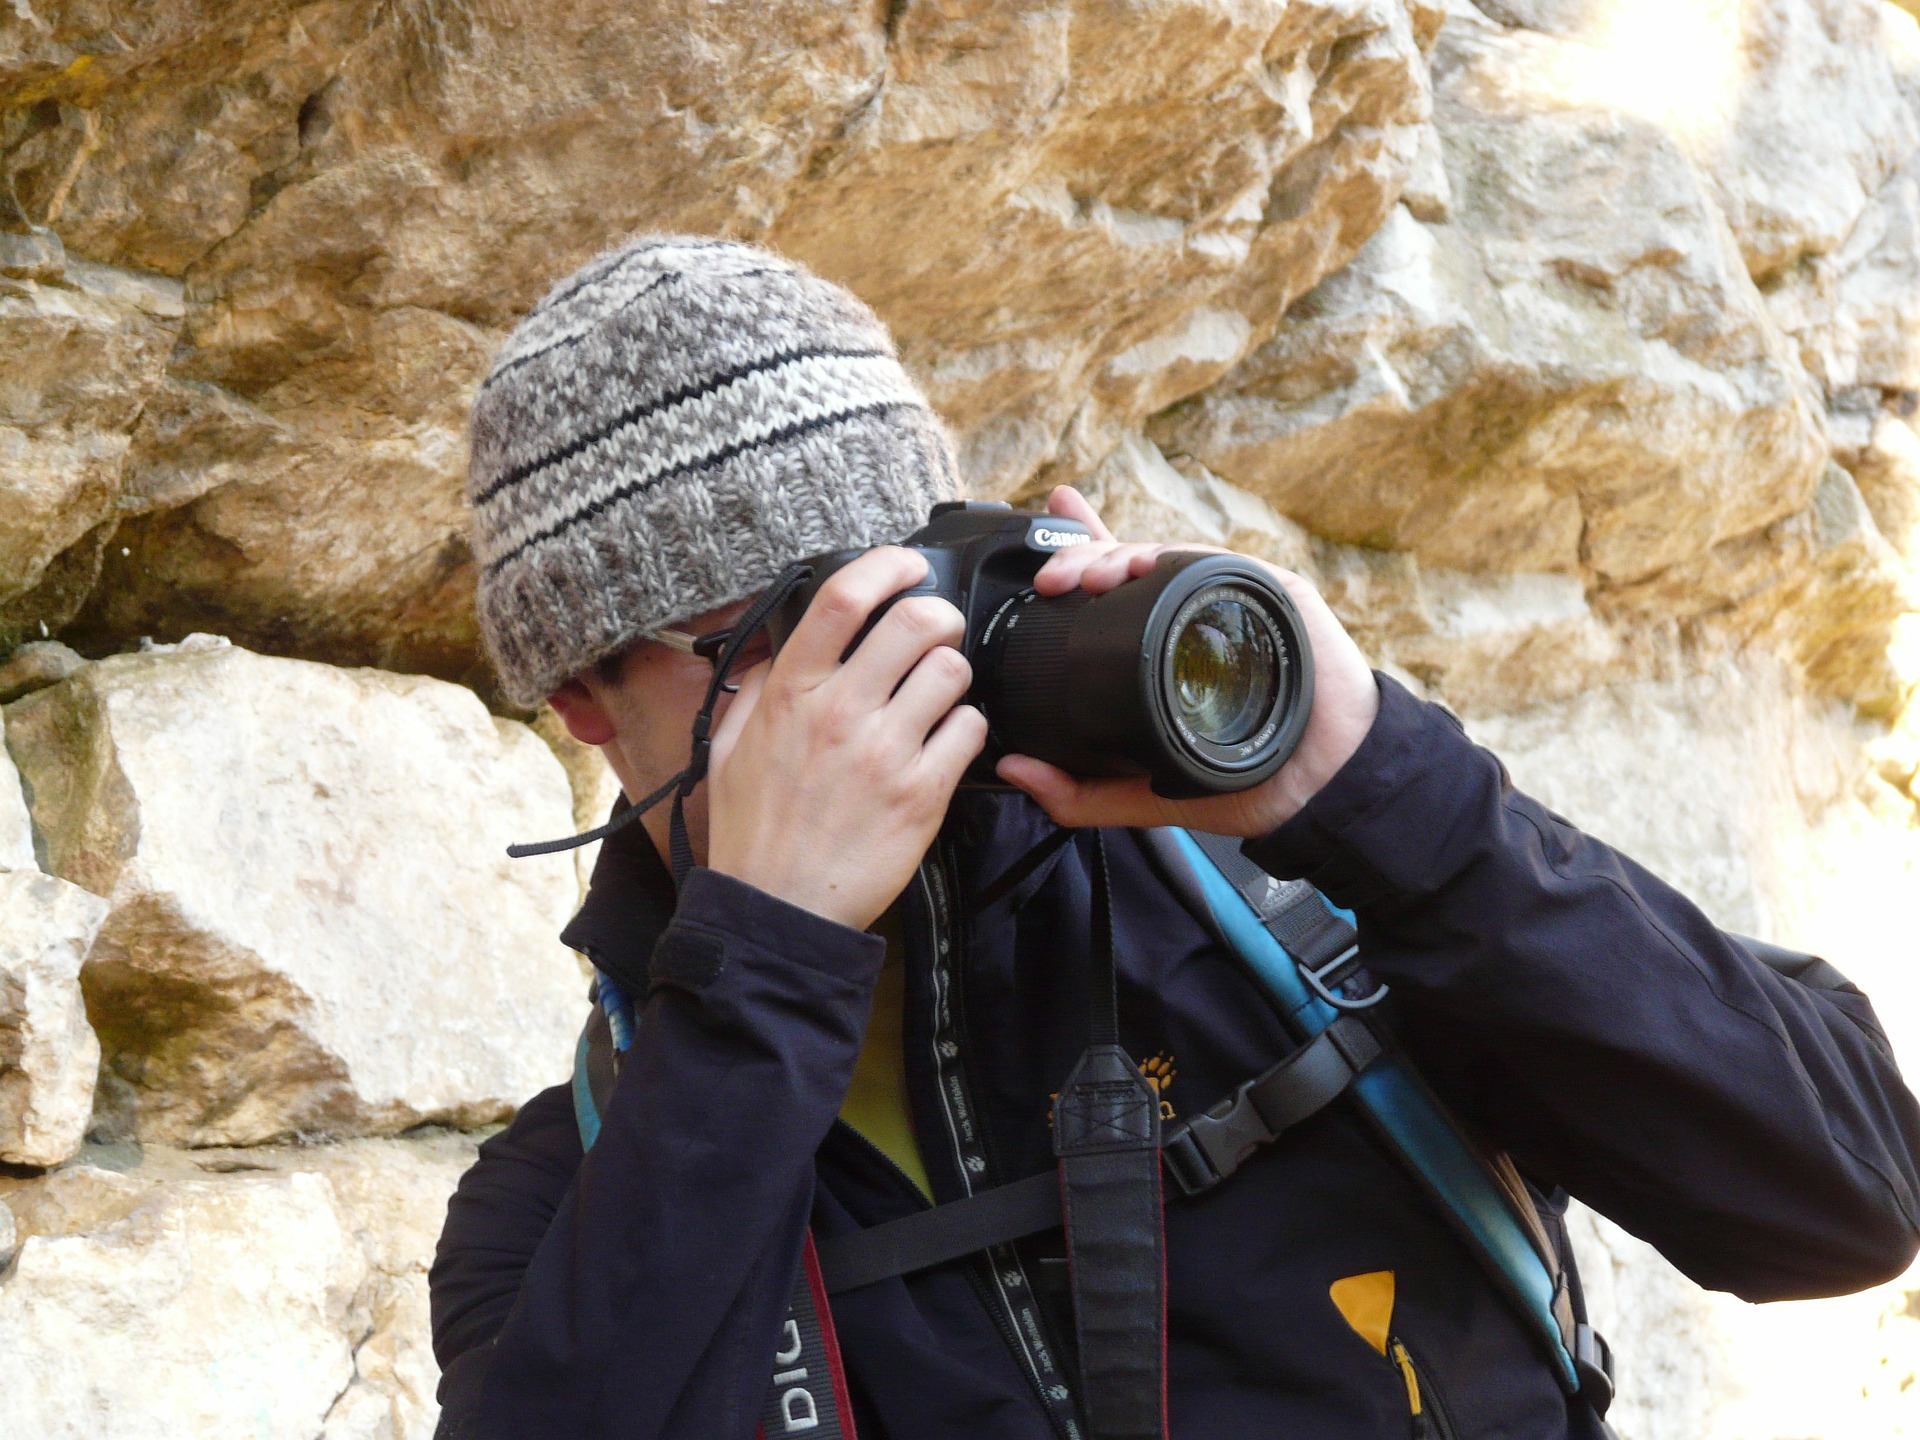 Taking Better Photos With Your Nikon